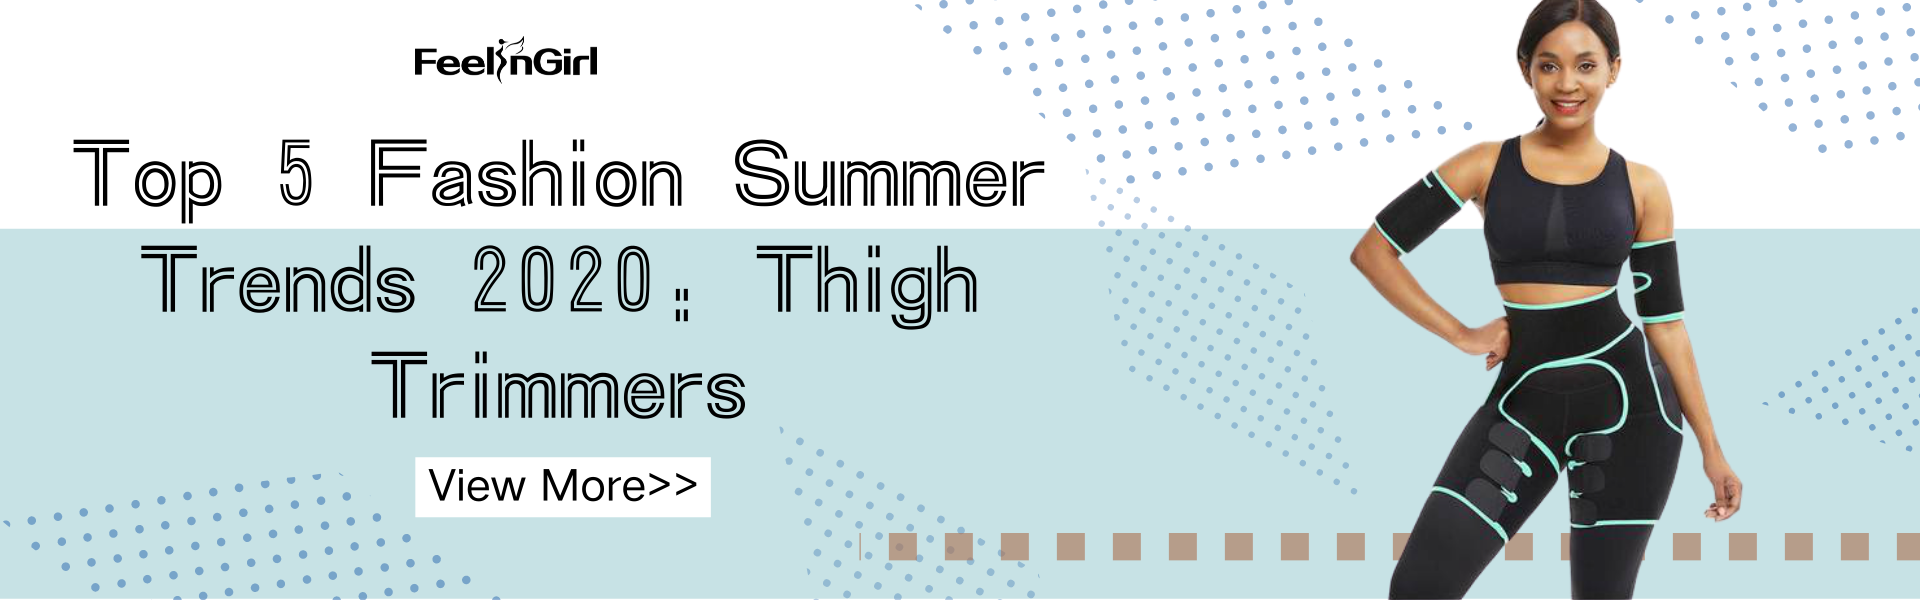 Top 5 Fashion Summer Trends 2020: Thigh Trimmers